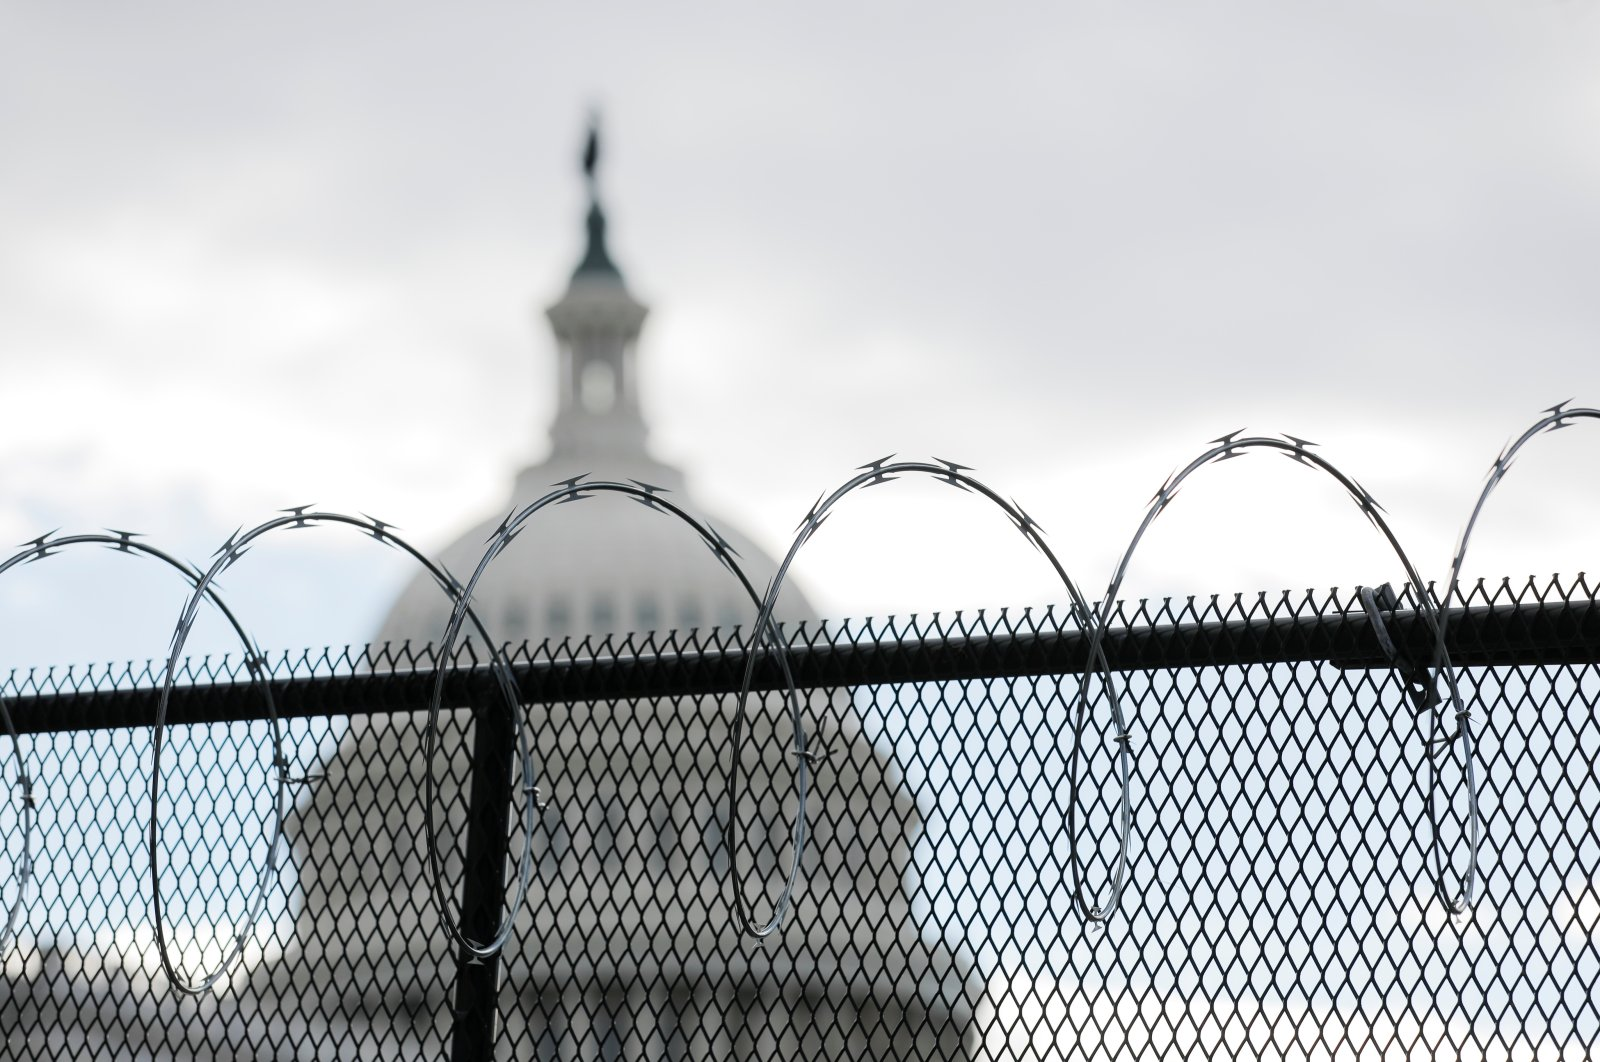 Razor wire on top of a fence protecting the U.S. Capitol building ahead of U.S. President-elect Joe Biden's inauguration, in Washington, D.C., Jan. 19, 2021. (Reuters Photo)